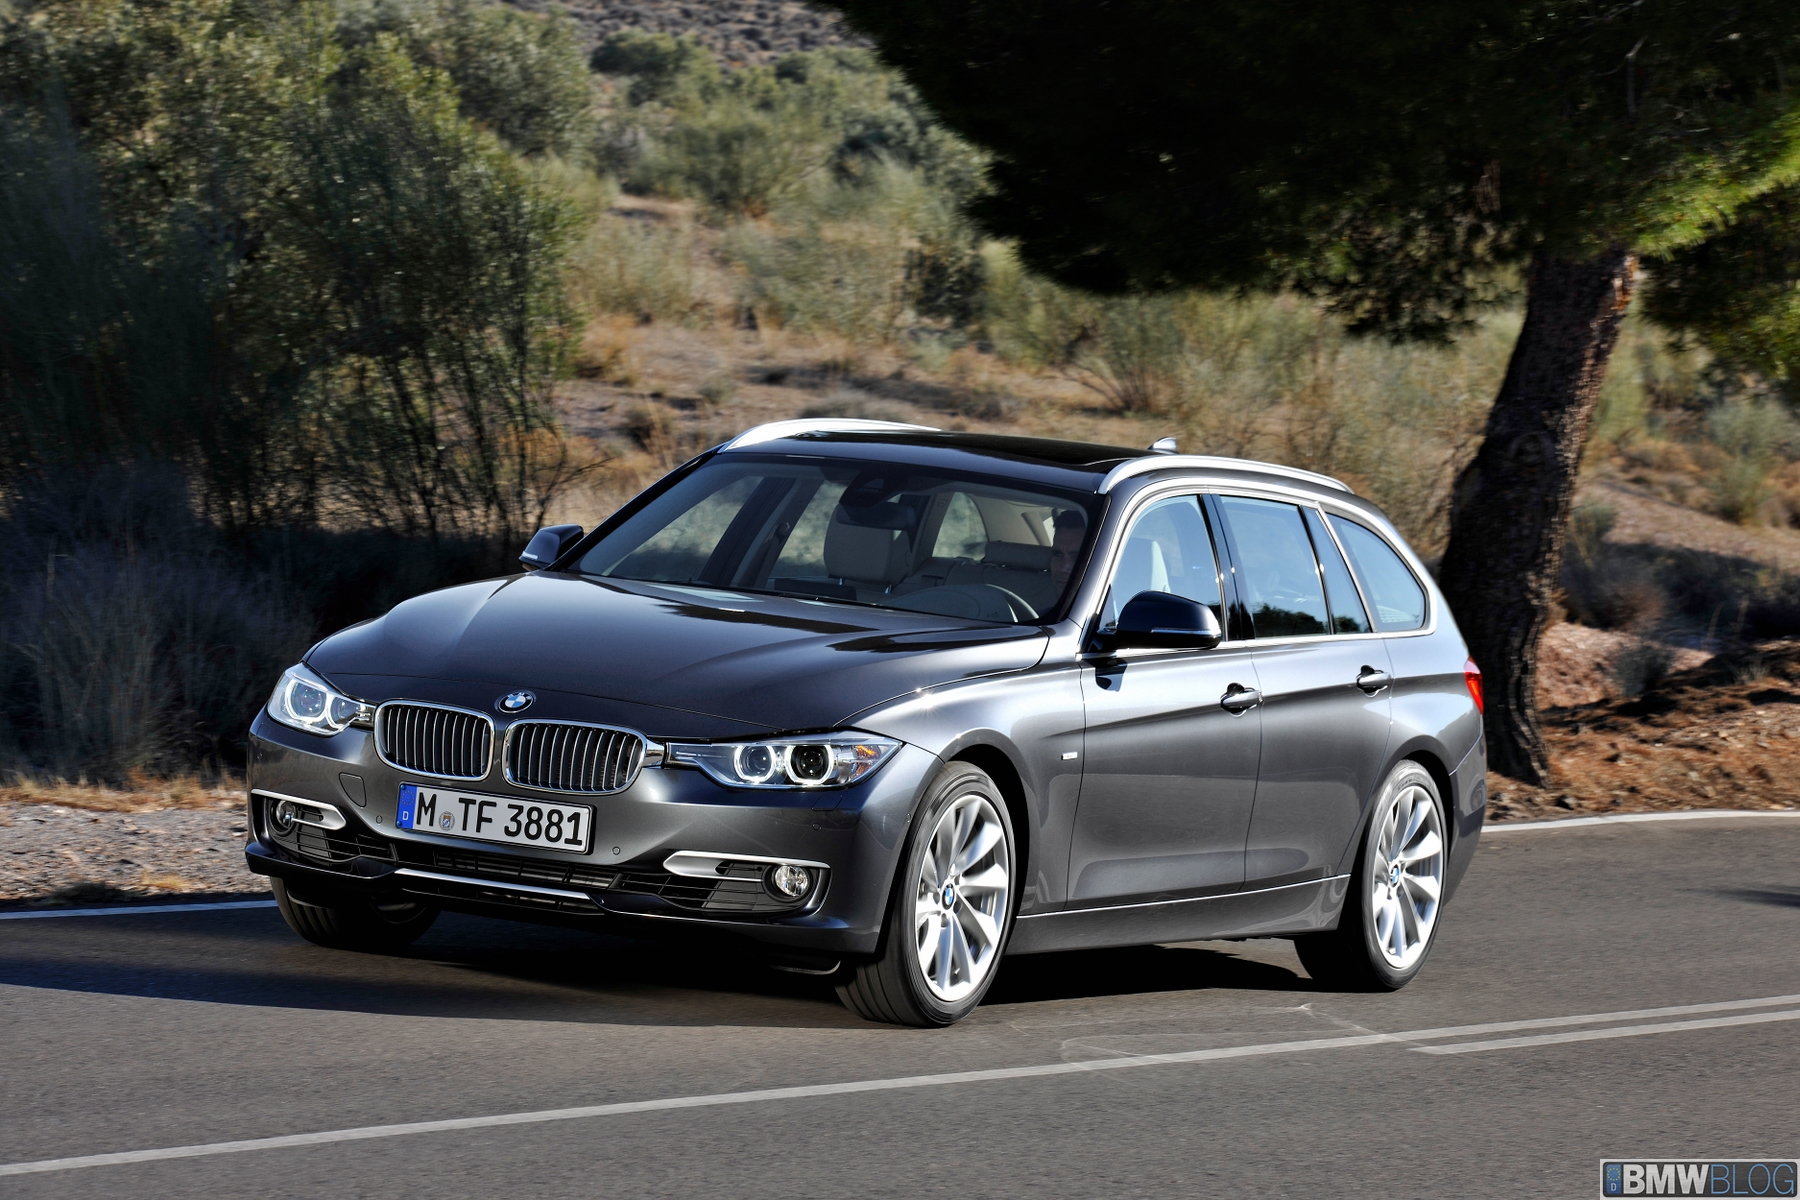 2015 Bmw 3 Series Sedan And Sports Wagon U S Pricing And Changes